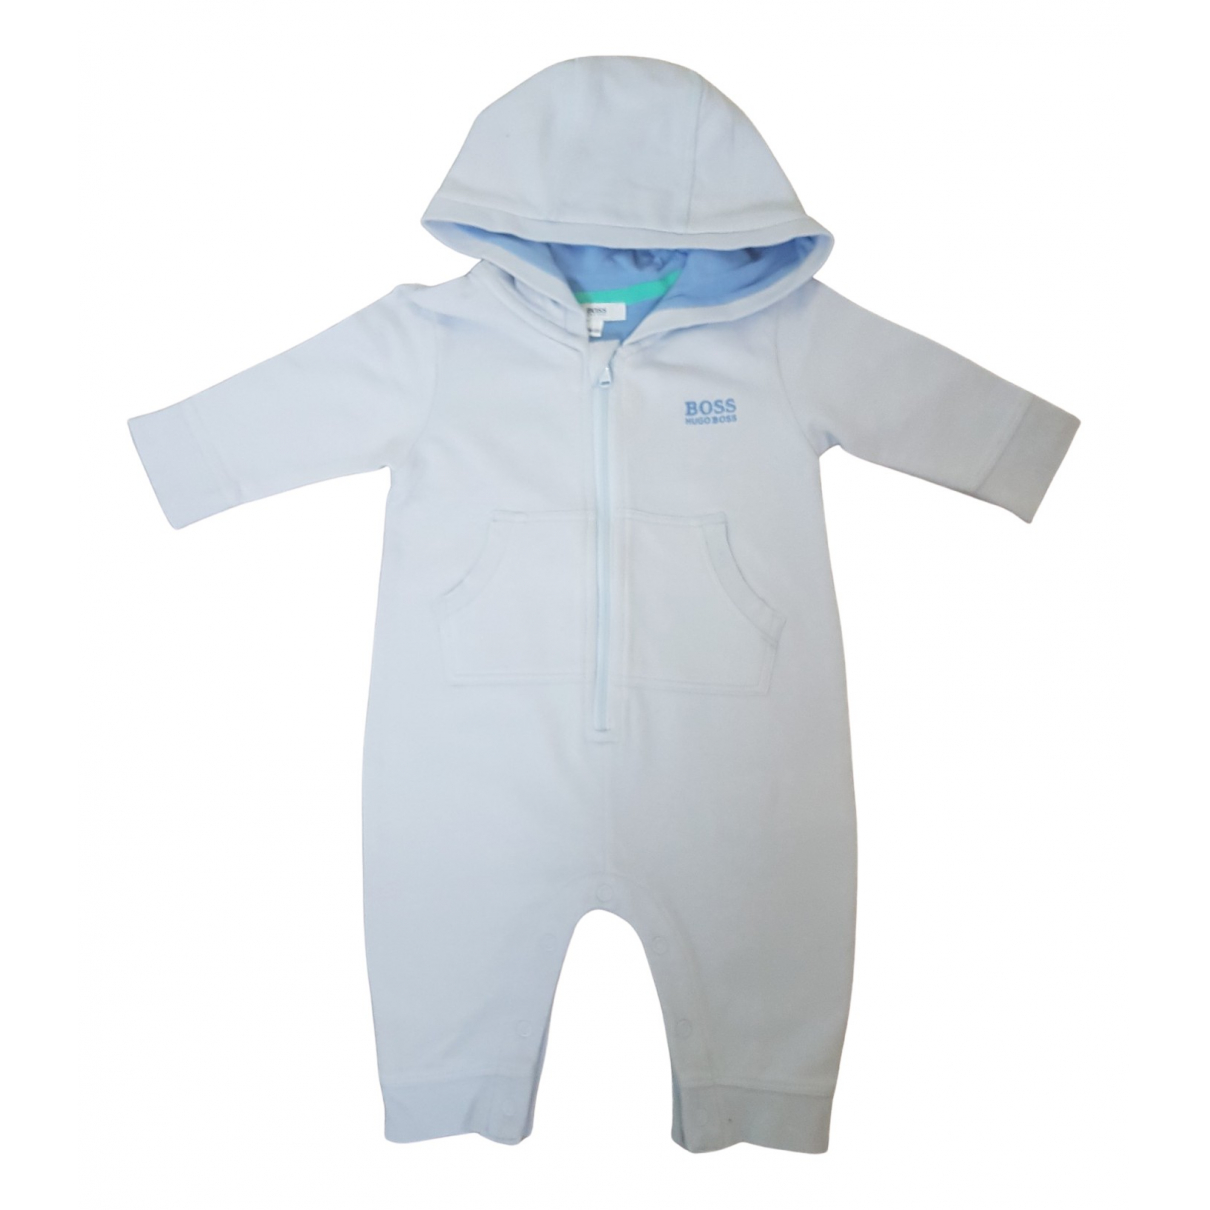 Hugo Boss N Blue Cotton Outfits for Kids 3 months - up to 60cm FR